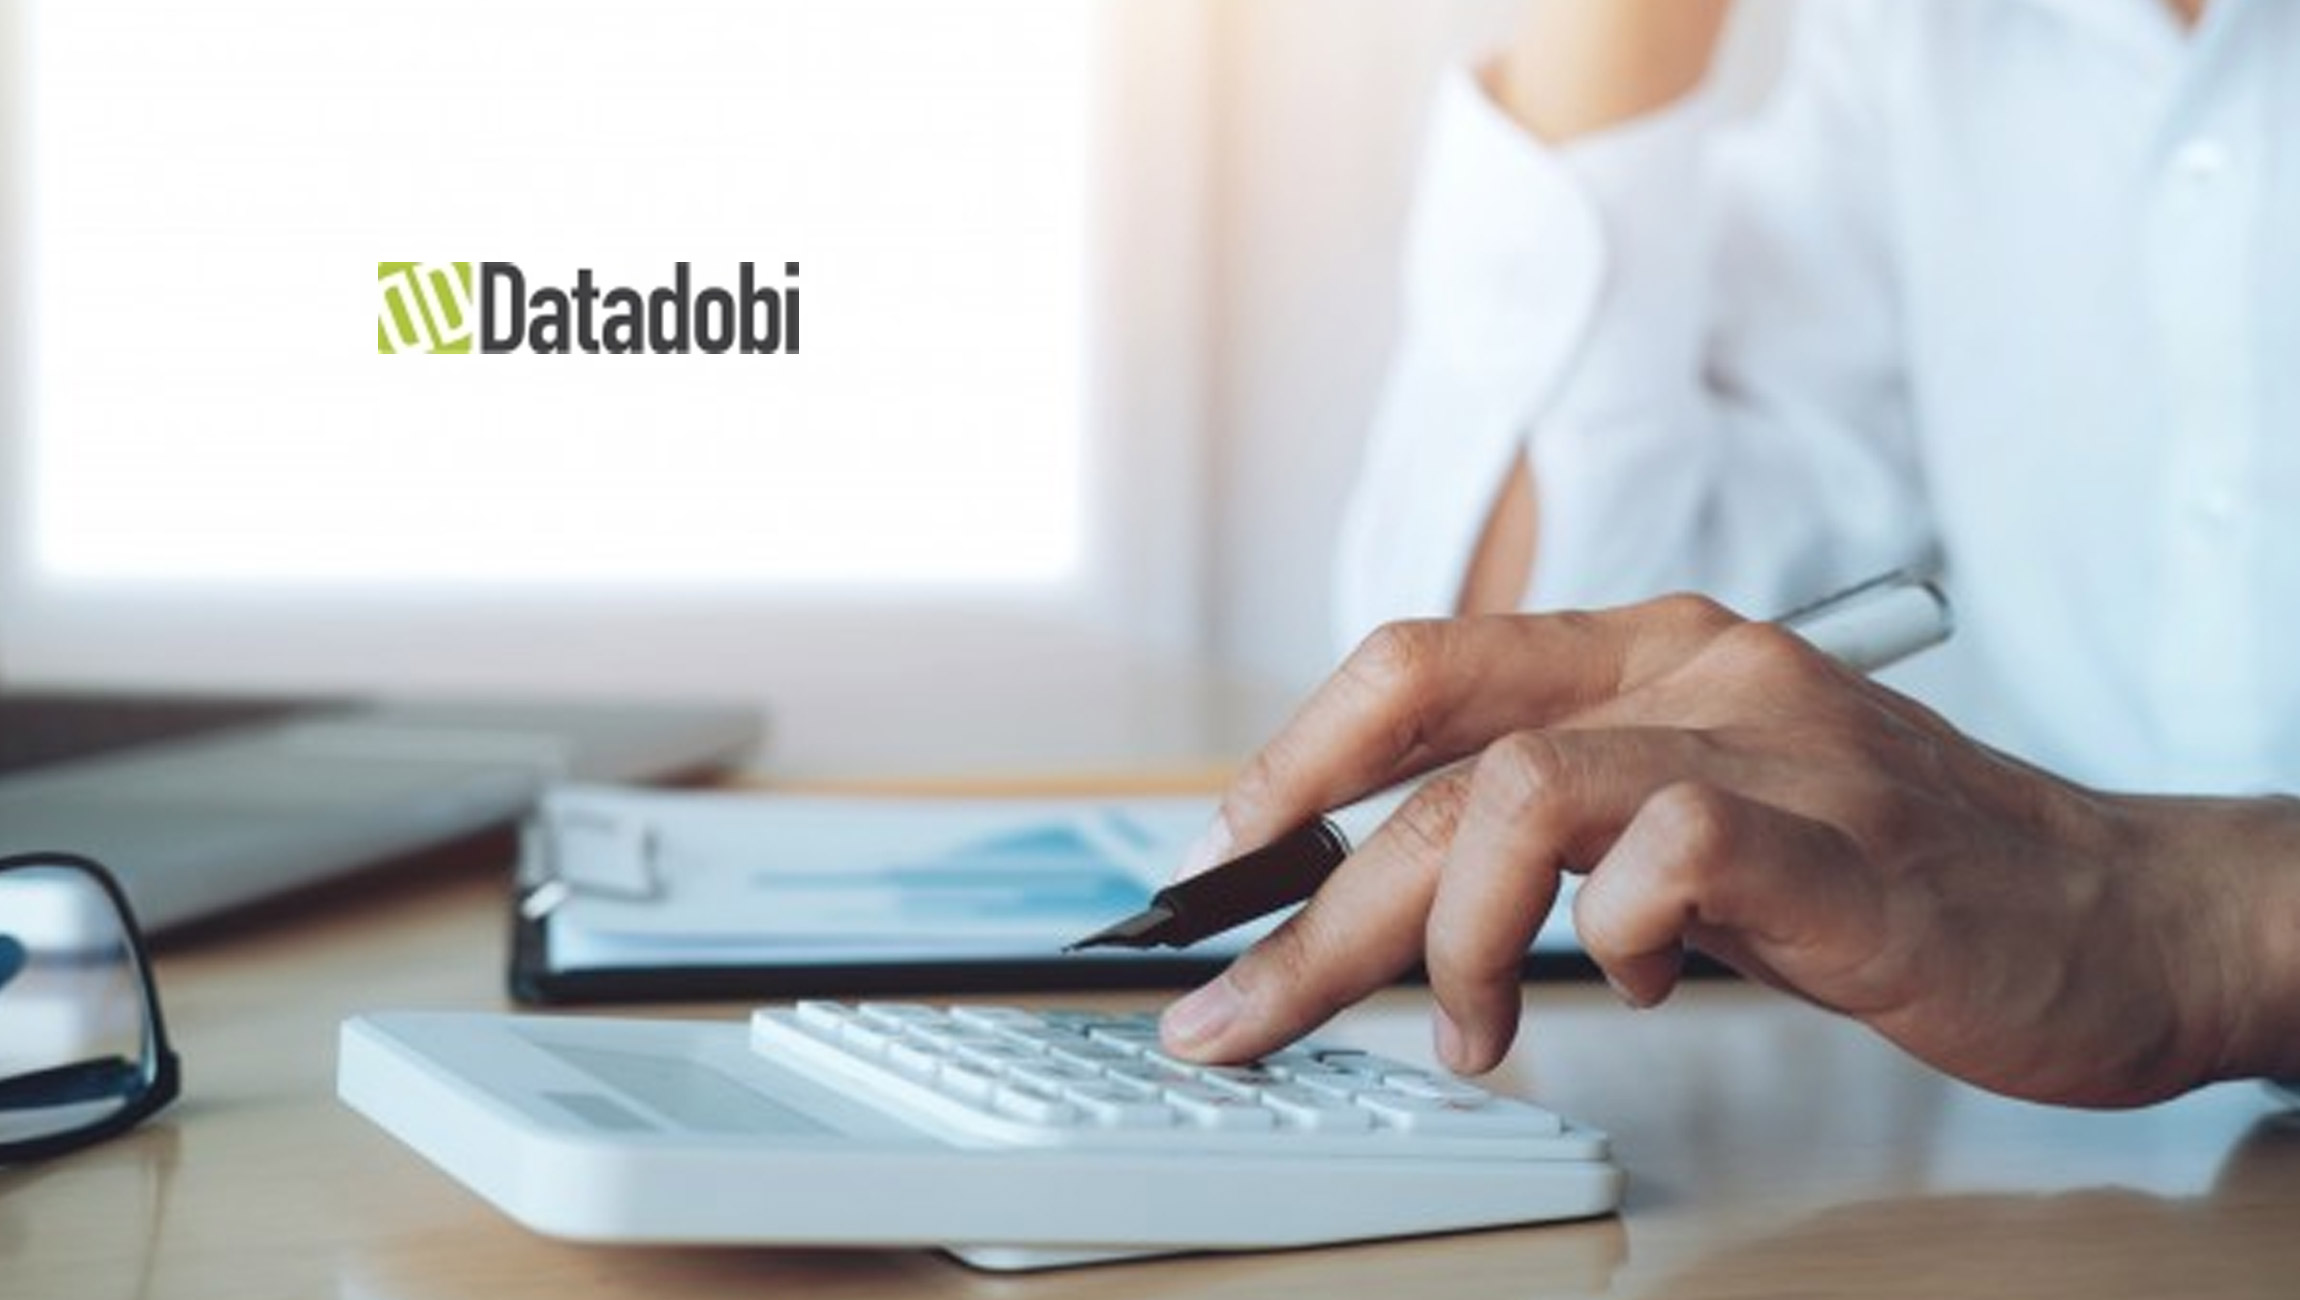 Datadobi's Migration Performance and Expansion Plans for the Data Management Market Analyzed in New 451 Research Market Insight Report